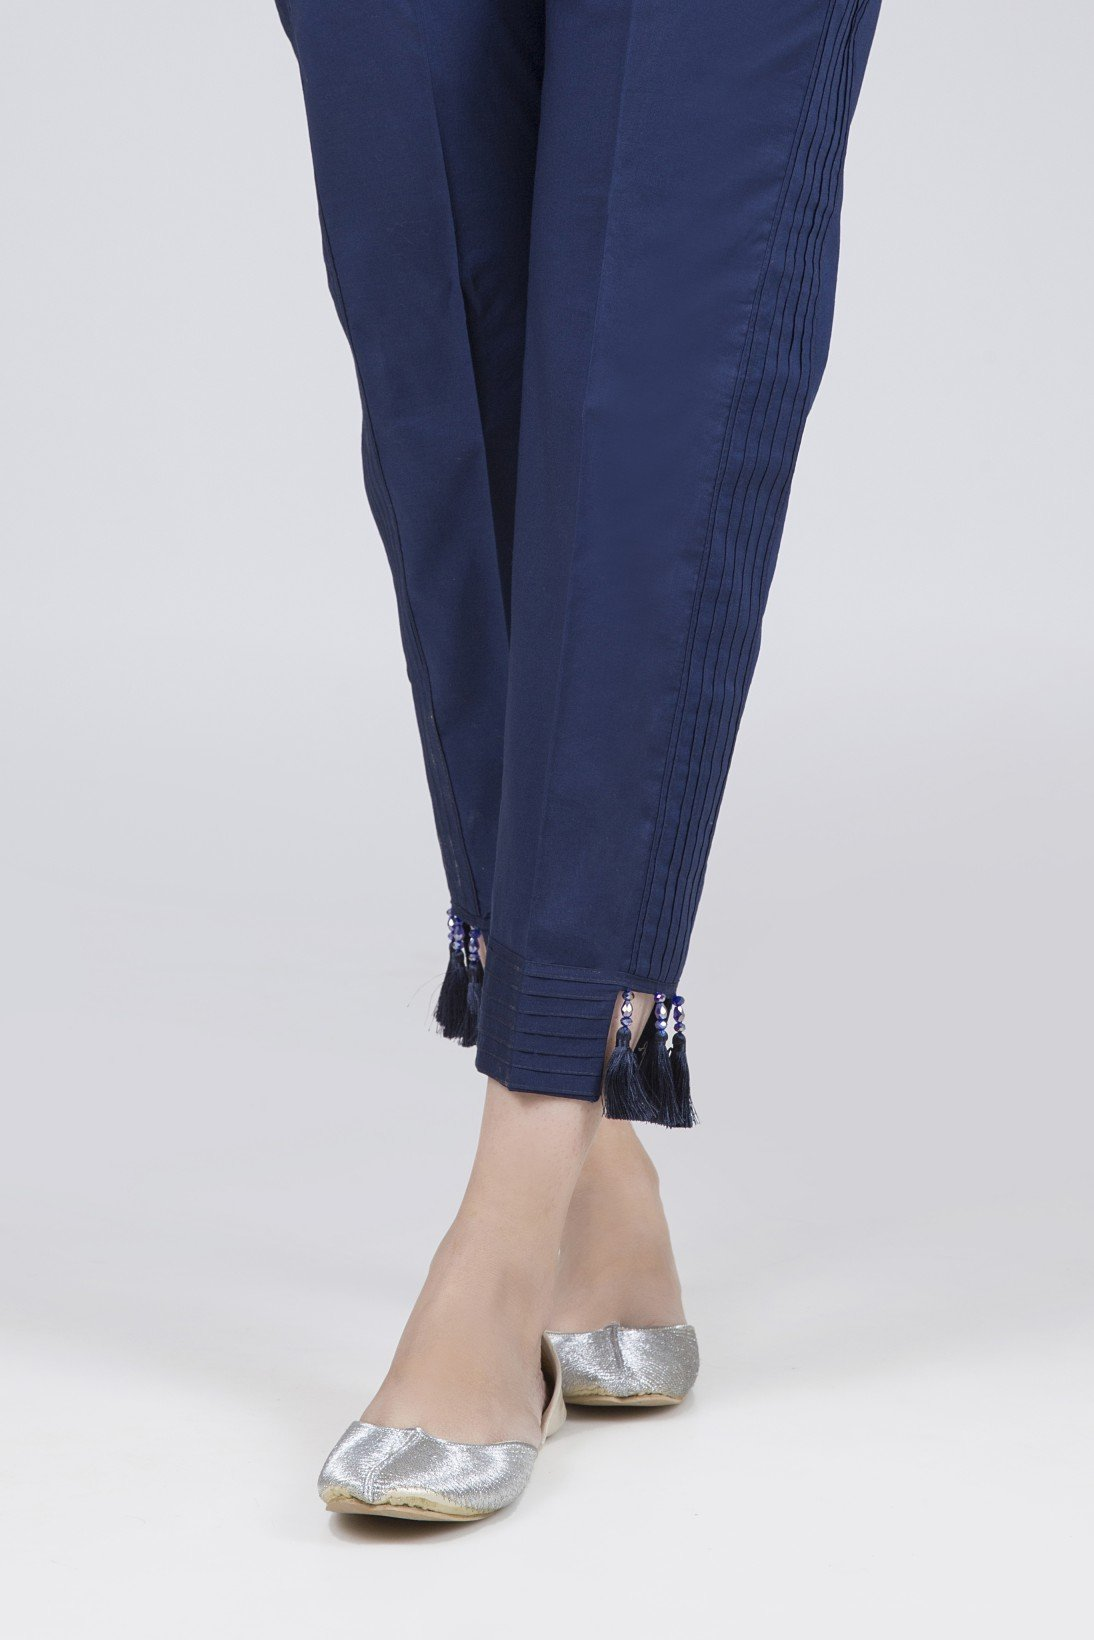 Bonanza Satrangi - Navy Blue Unstitched Trouser